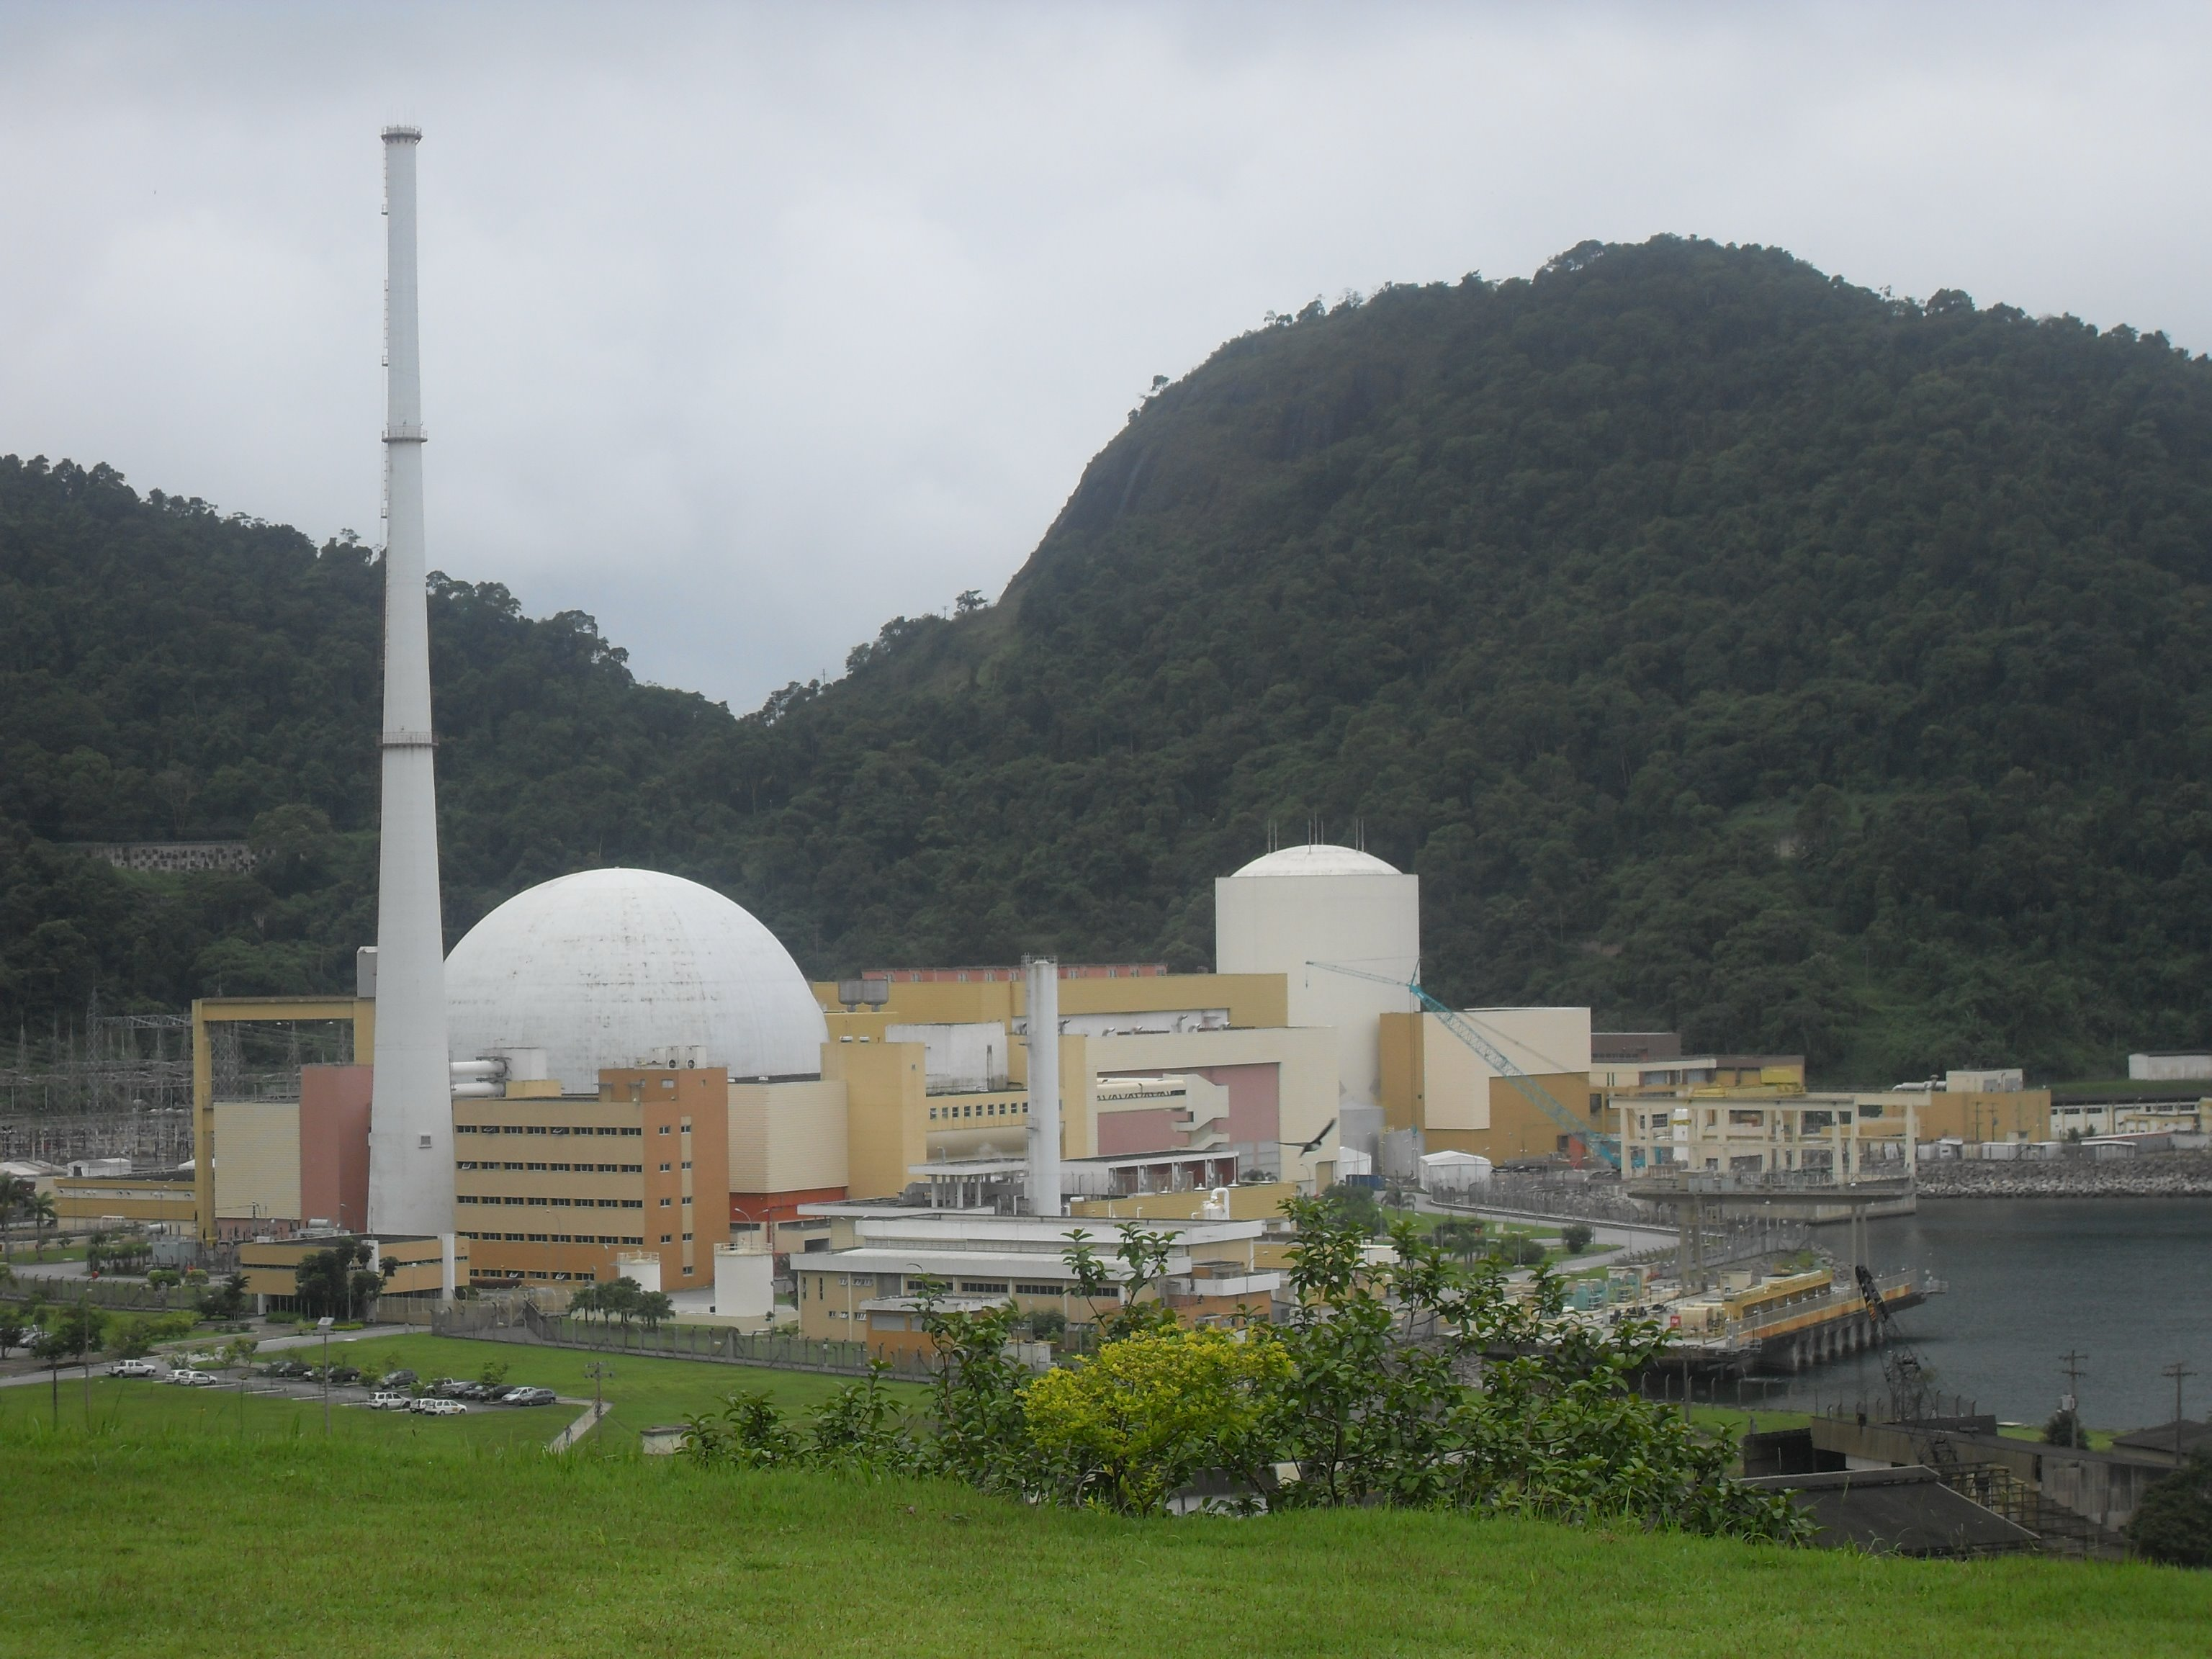 https://upload.wikimedia.org/wikipedia/commons/c/c6/Angra_dos_Reis_-_usinas_nucleares.jpg